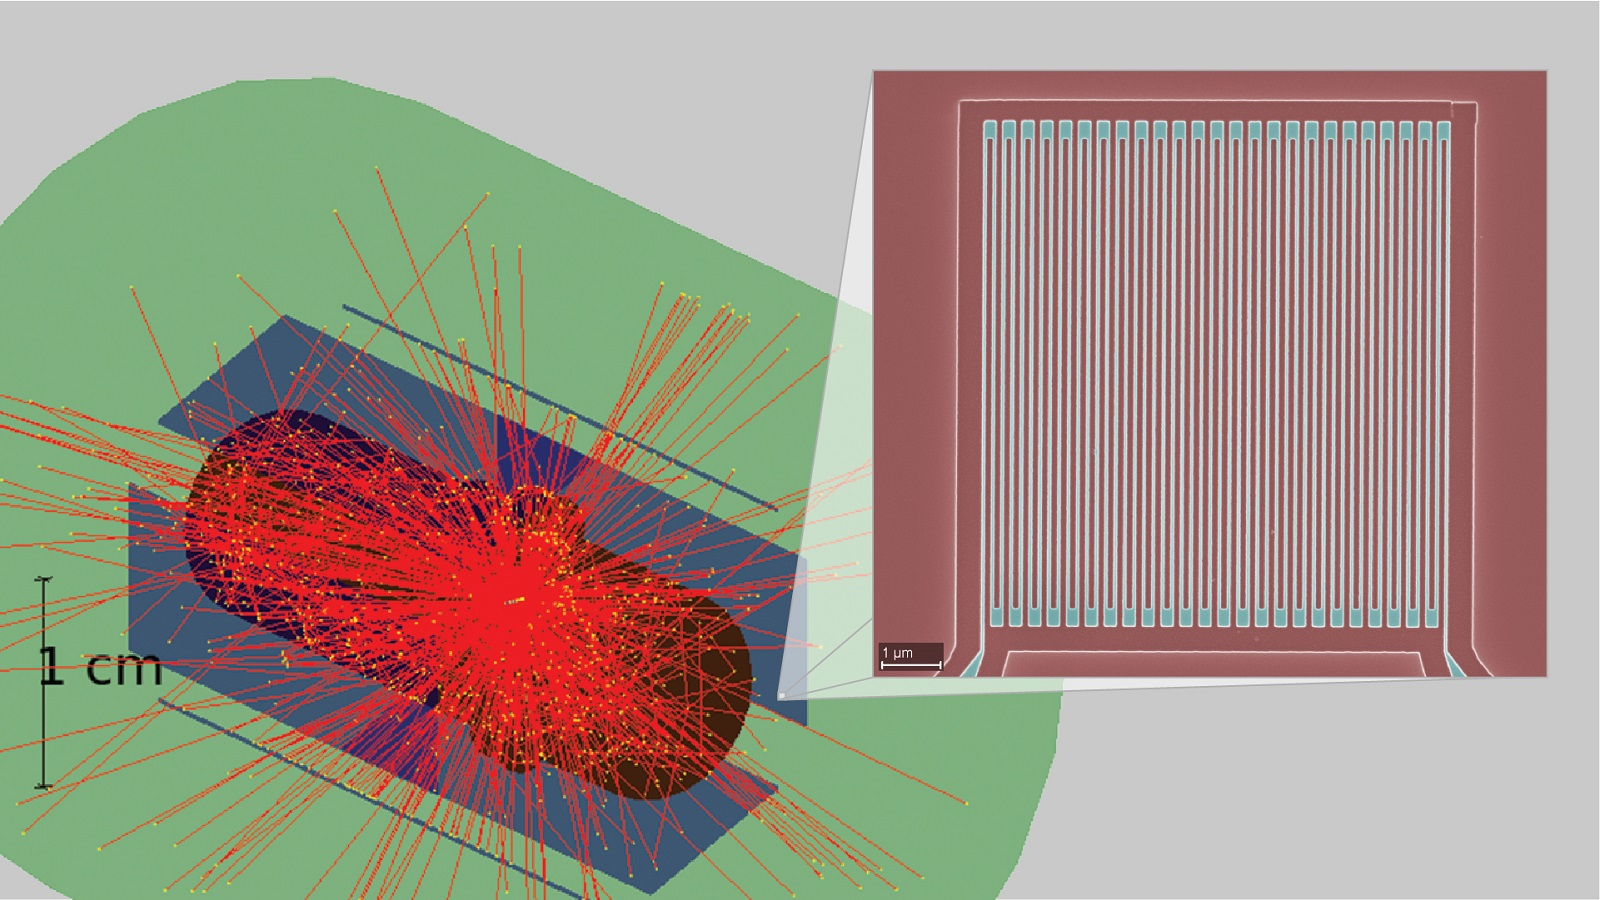 Simulation of high-speed superconducting nanowire detectors to be used in nuclear physics experiments. Green: cryogenic environment (near absolute zero) of experiment; purple: detectors; red, photons emitted from solid ammonia target at center. Inset: one of the Argonne devices in the detectors (scale bar, 1 µm).